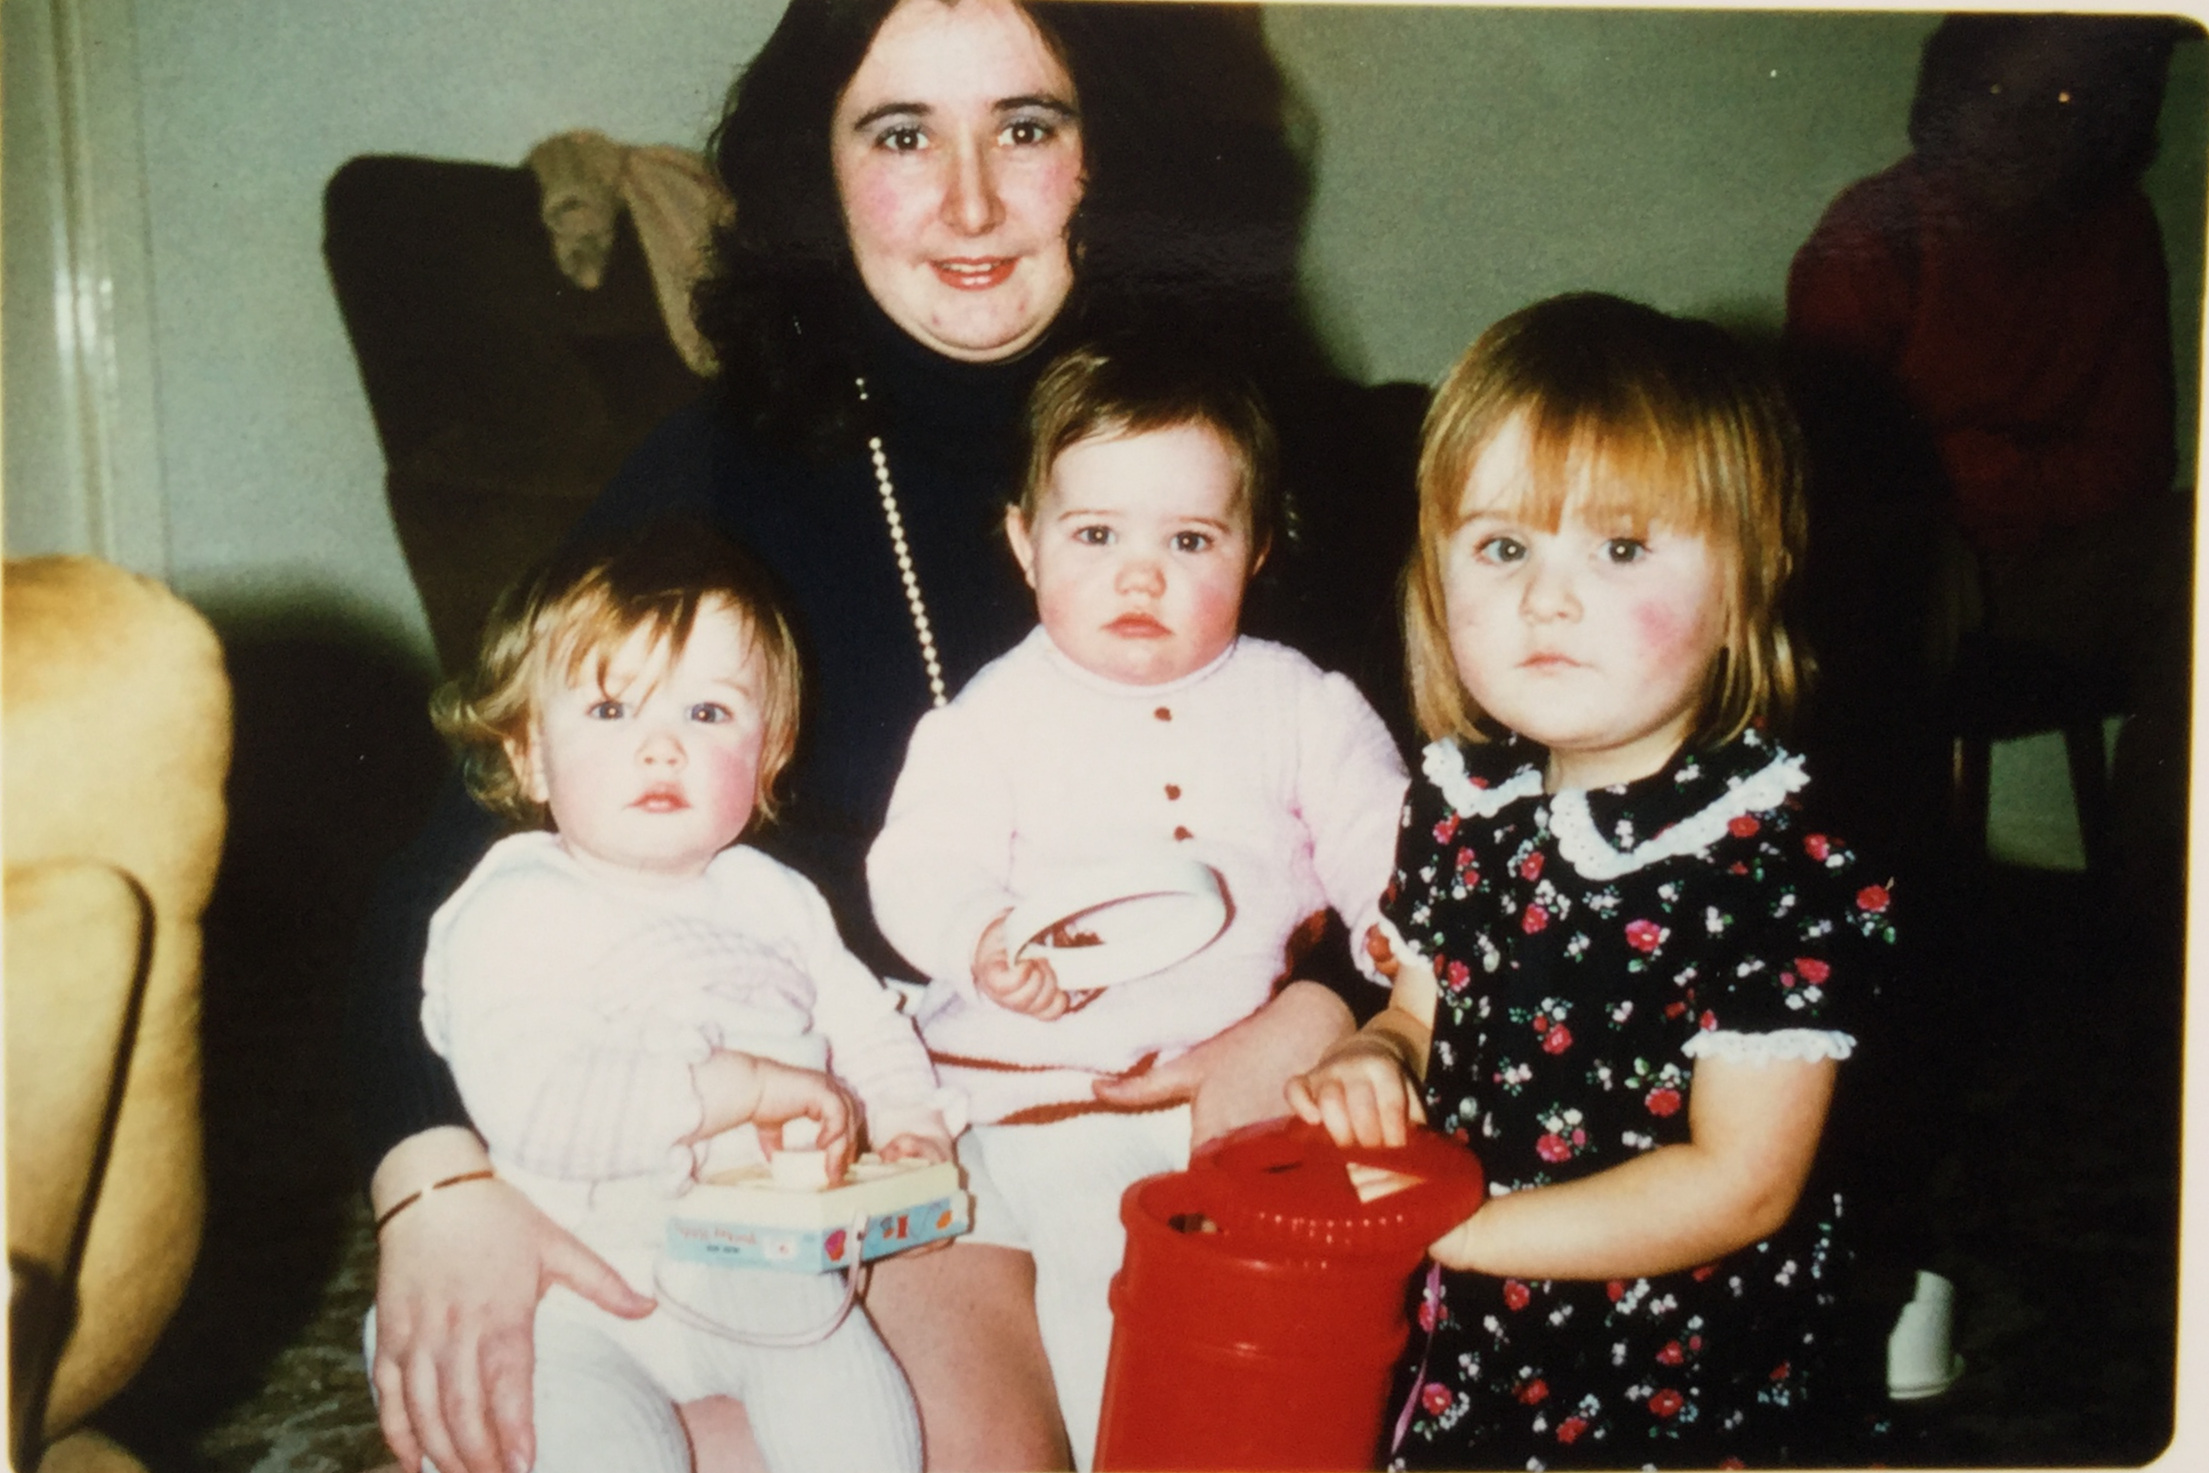 My sister, my cousin, my mum and me on the right.